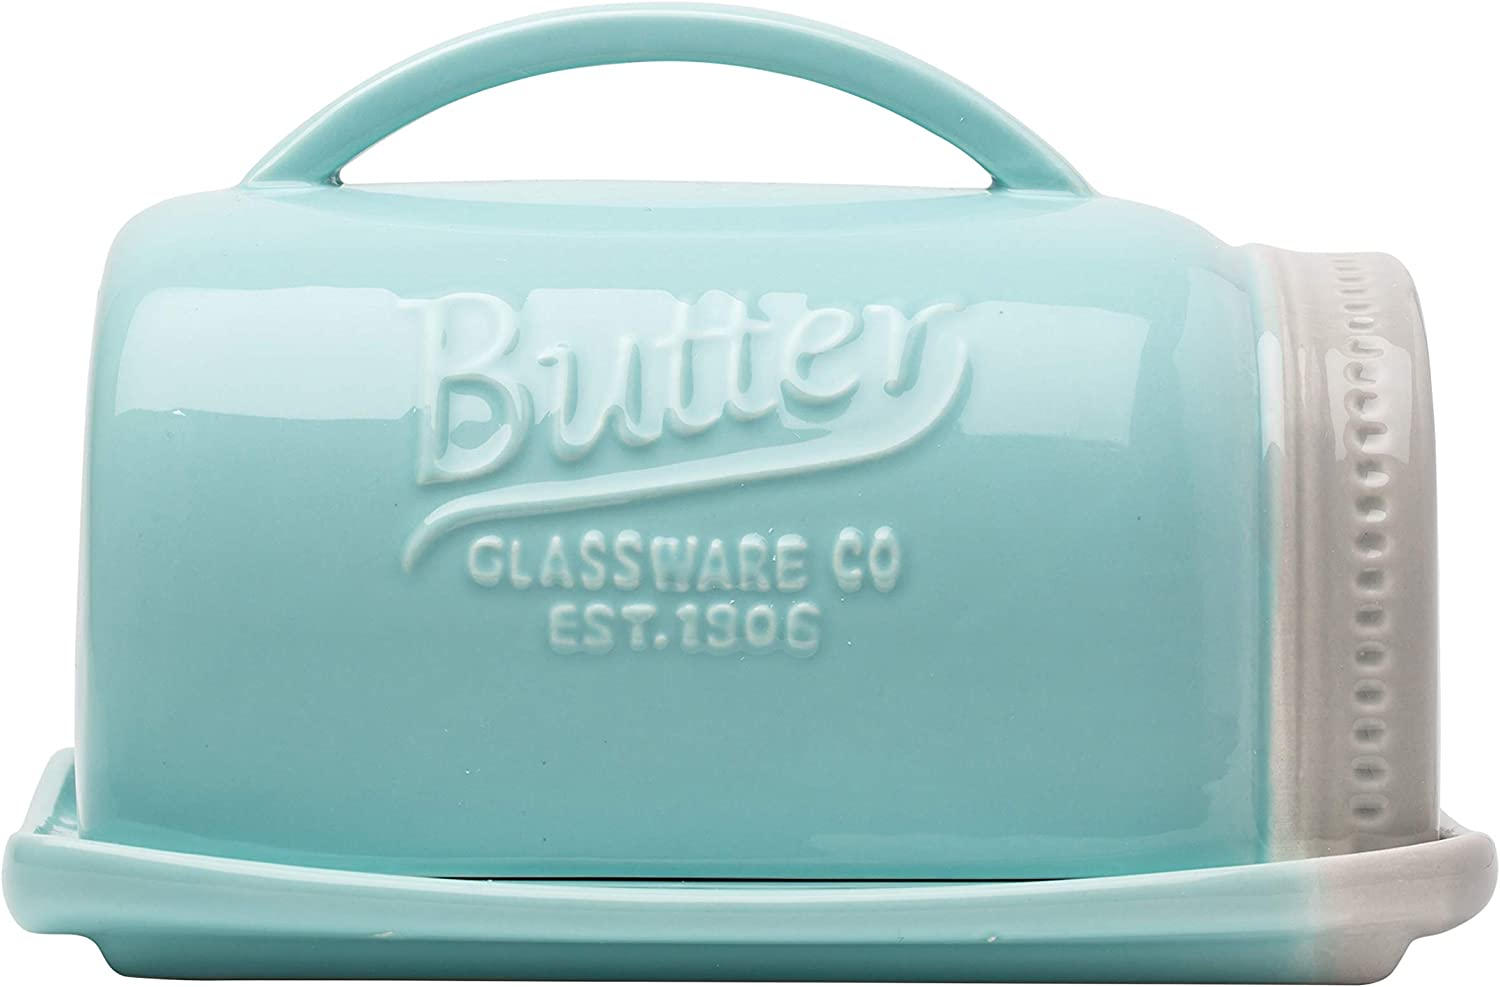 Ceramic Mason Jar Butter Dish w/Lid and Handle – Decorative, Farmhouse Butter Holder in Adorable Aqua Blue Color – Convenient, Retro Butter Storage Container Made of Chip-Free Ceramic